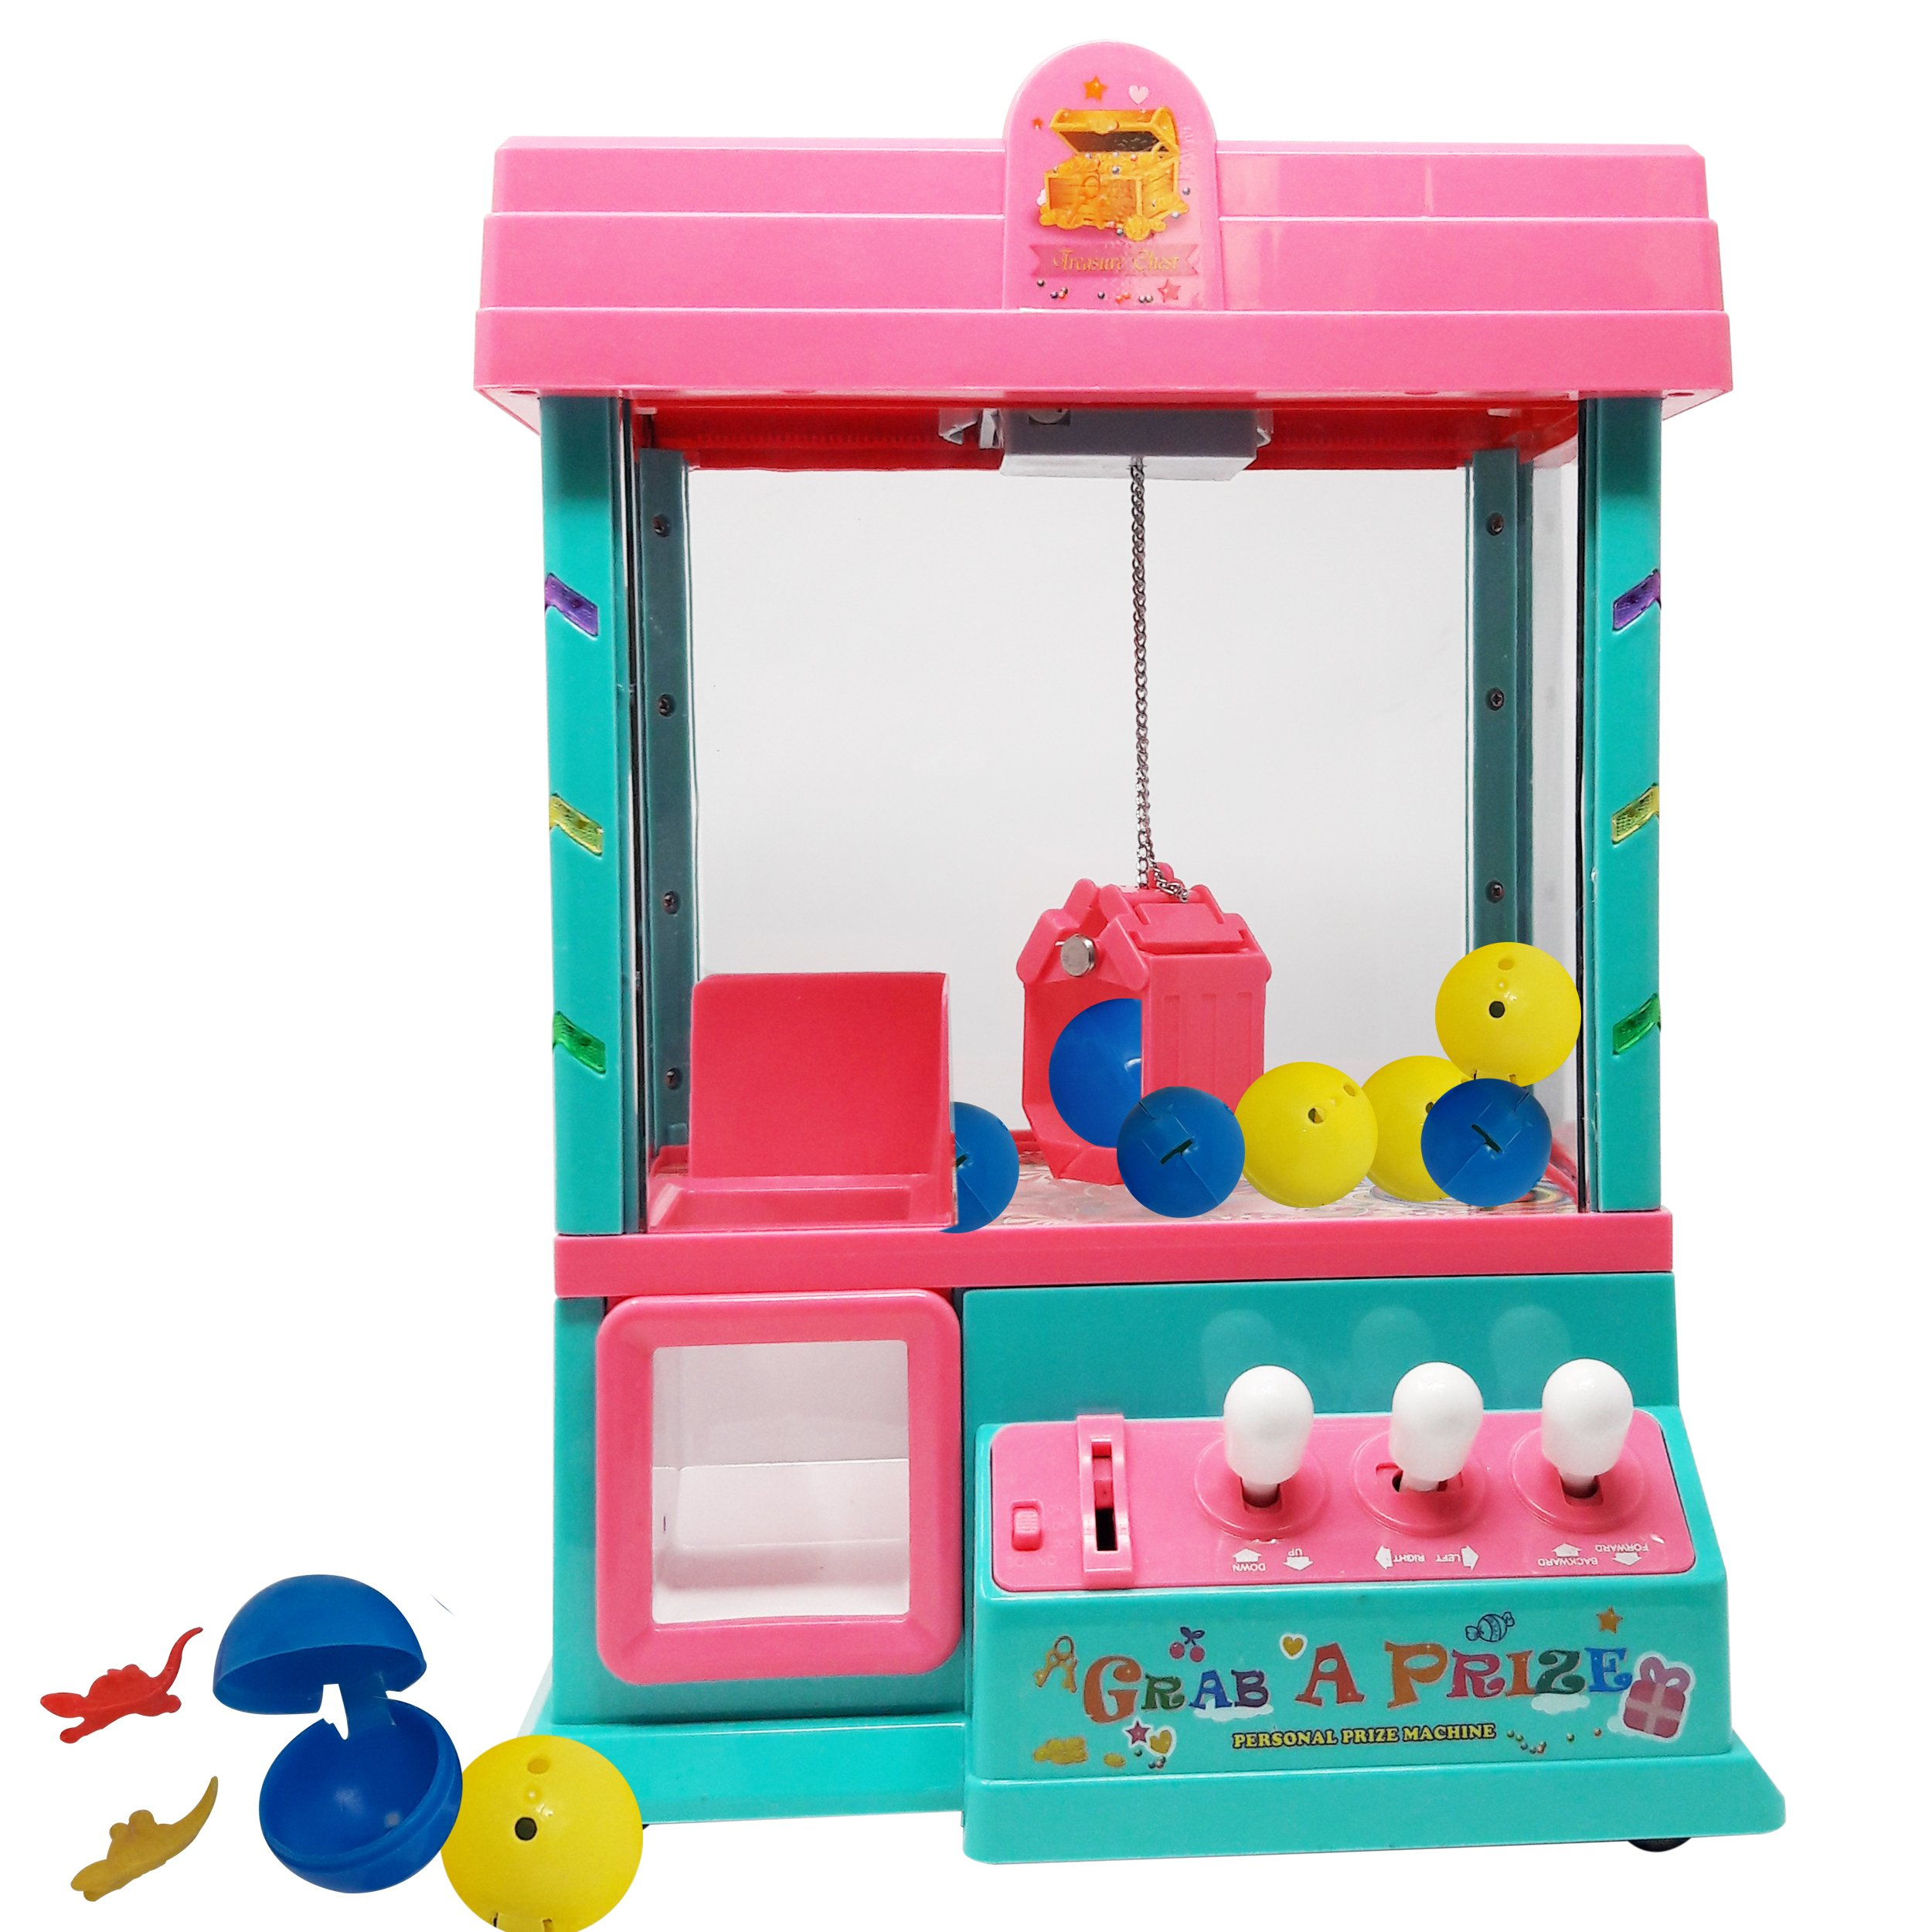 Claw Home Arcade Game Prize Grabber Carnival LED Lights Animation Adjustable Sounds USB Port Cable with 10 Plush Toys and 12 Filled Eggs by TSF TOYS (Image #8)